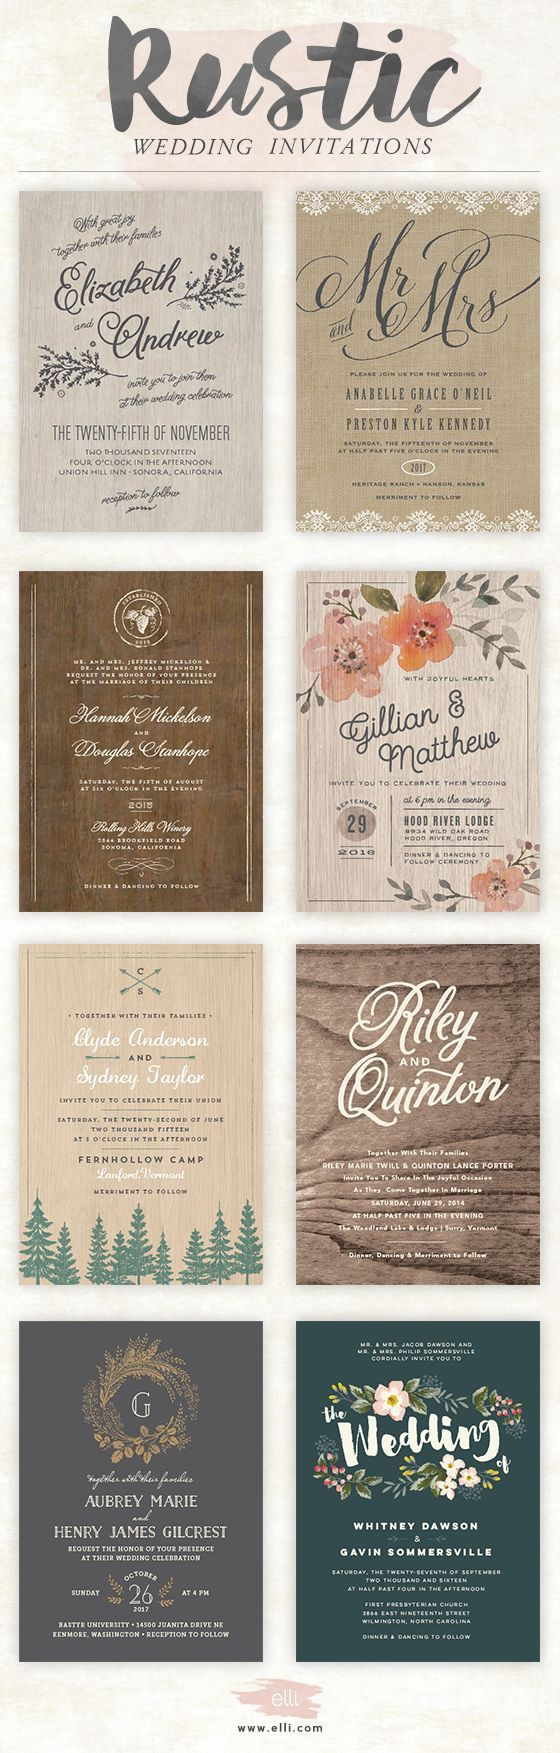 wedding shower poem ideas%0A Rustic wedding invitations    Bella Collina Weddings